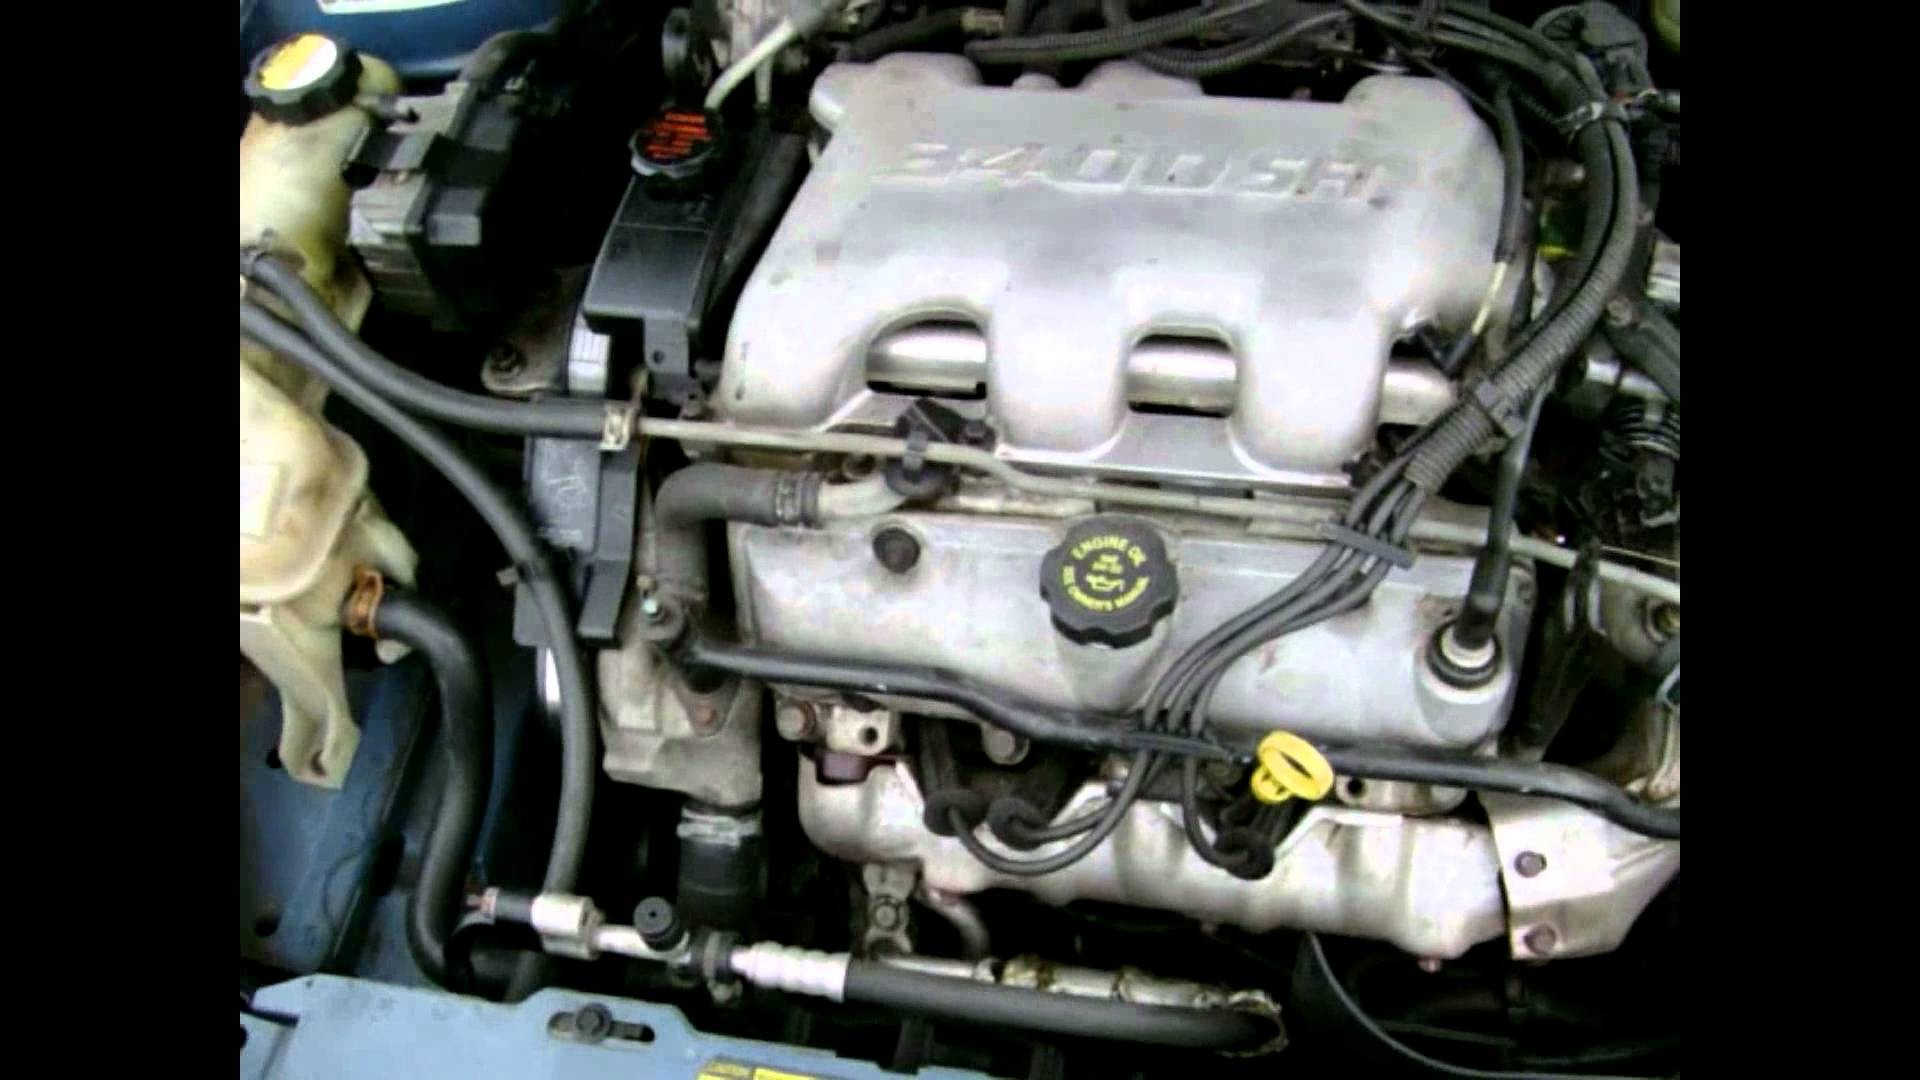 monte carlo 3 4l gm v6 engine diagram electrical work wiring diagram u2022 rh aglabs co Pontiac 3.4 Engine Diagram 95 Camaro 3.4 Engine Diagram